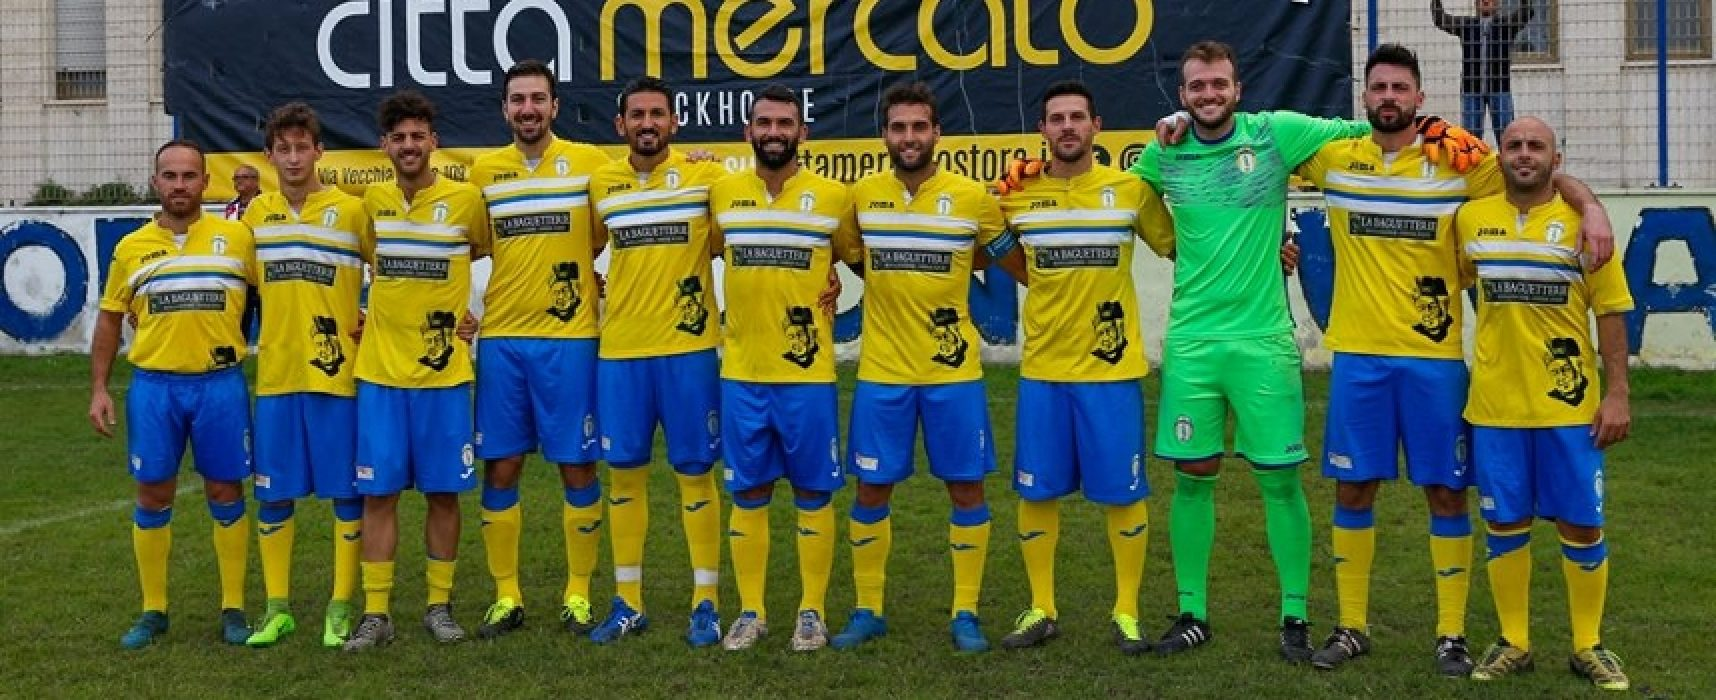 Il Don Uva torna alla vittoria interna, Trawally e Pasculli stendono il Celle San Vito / CLASSIFICA